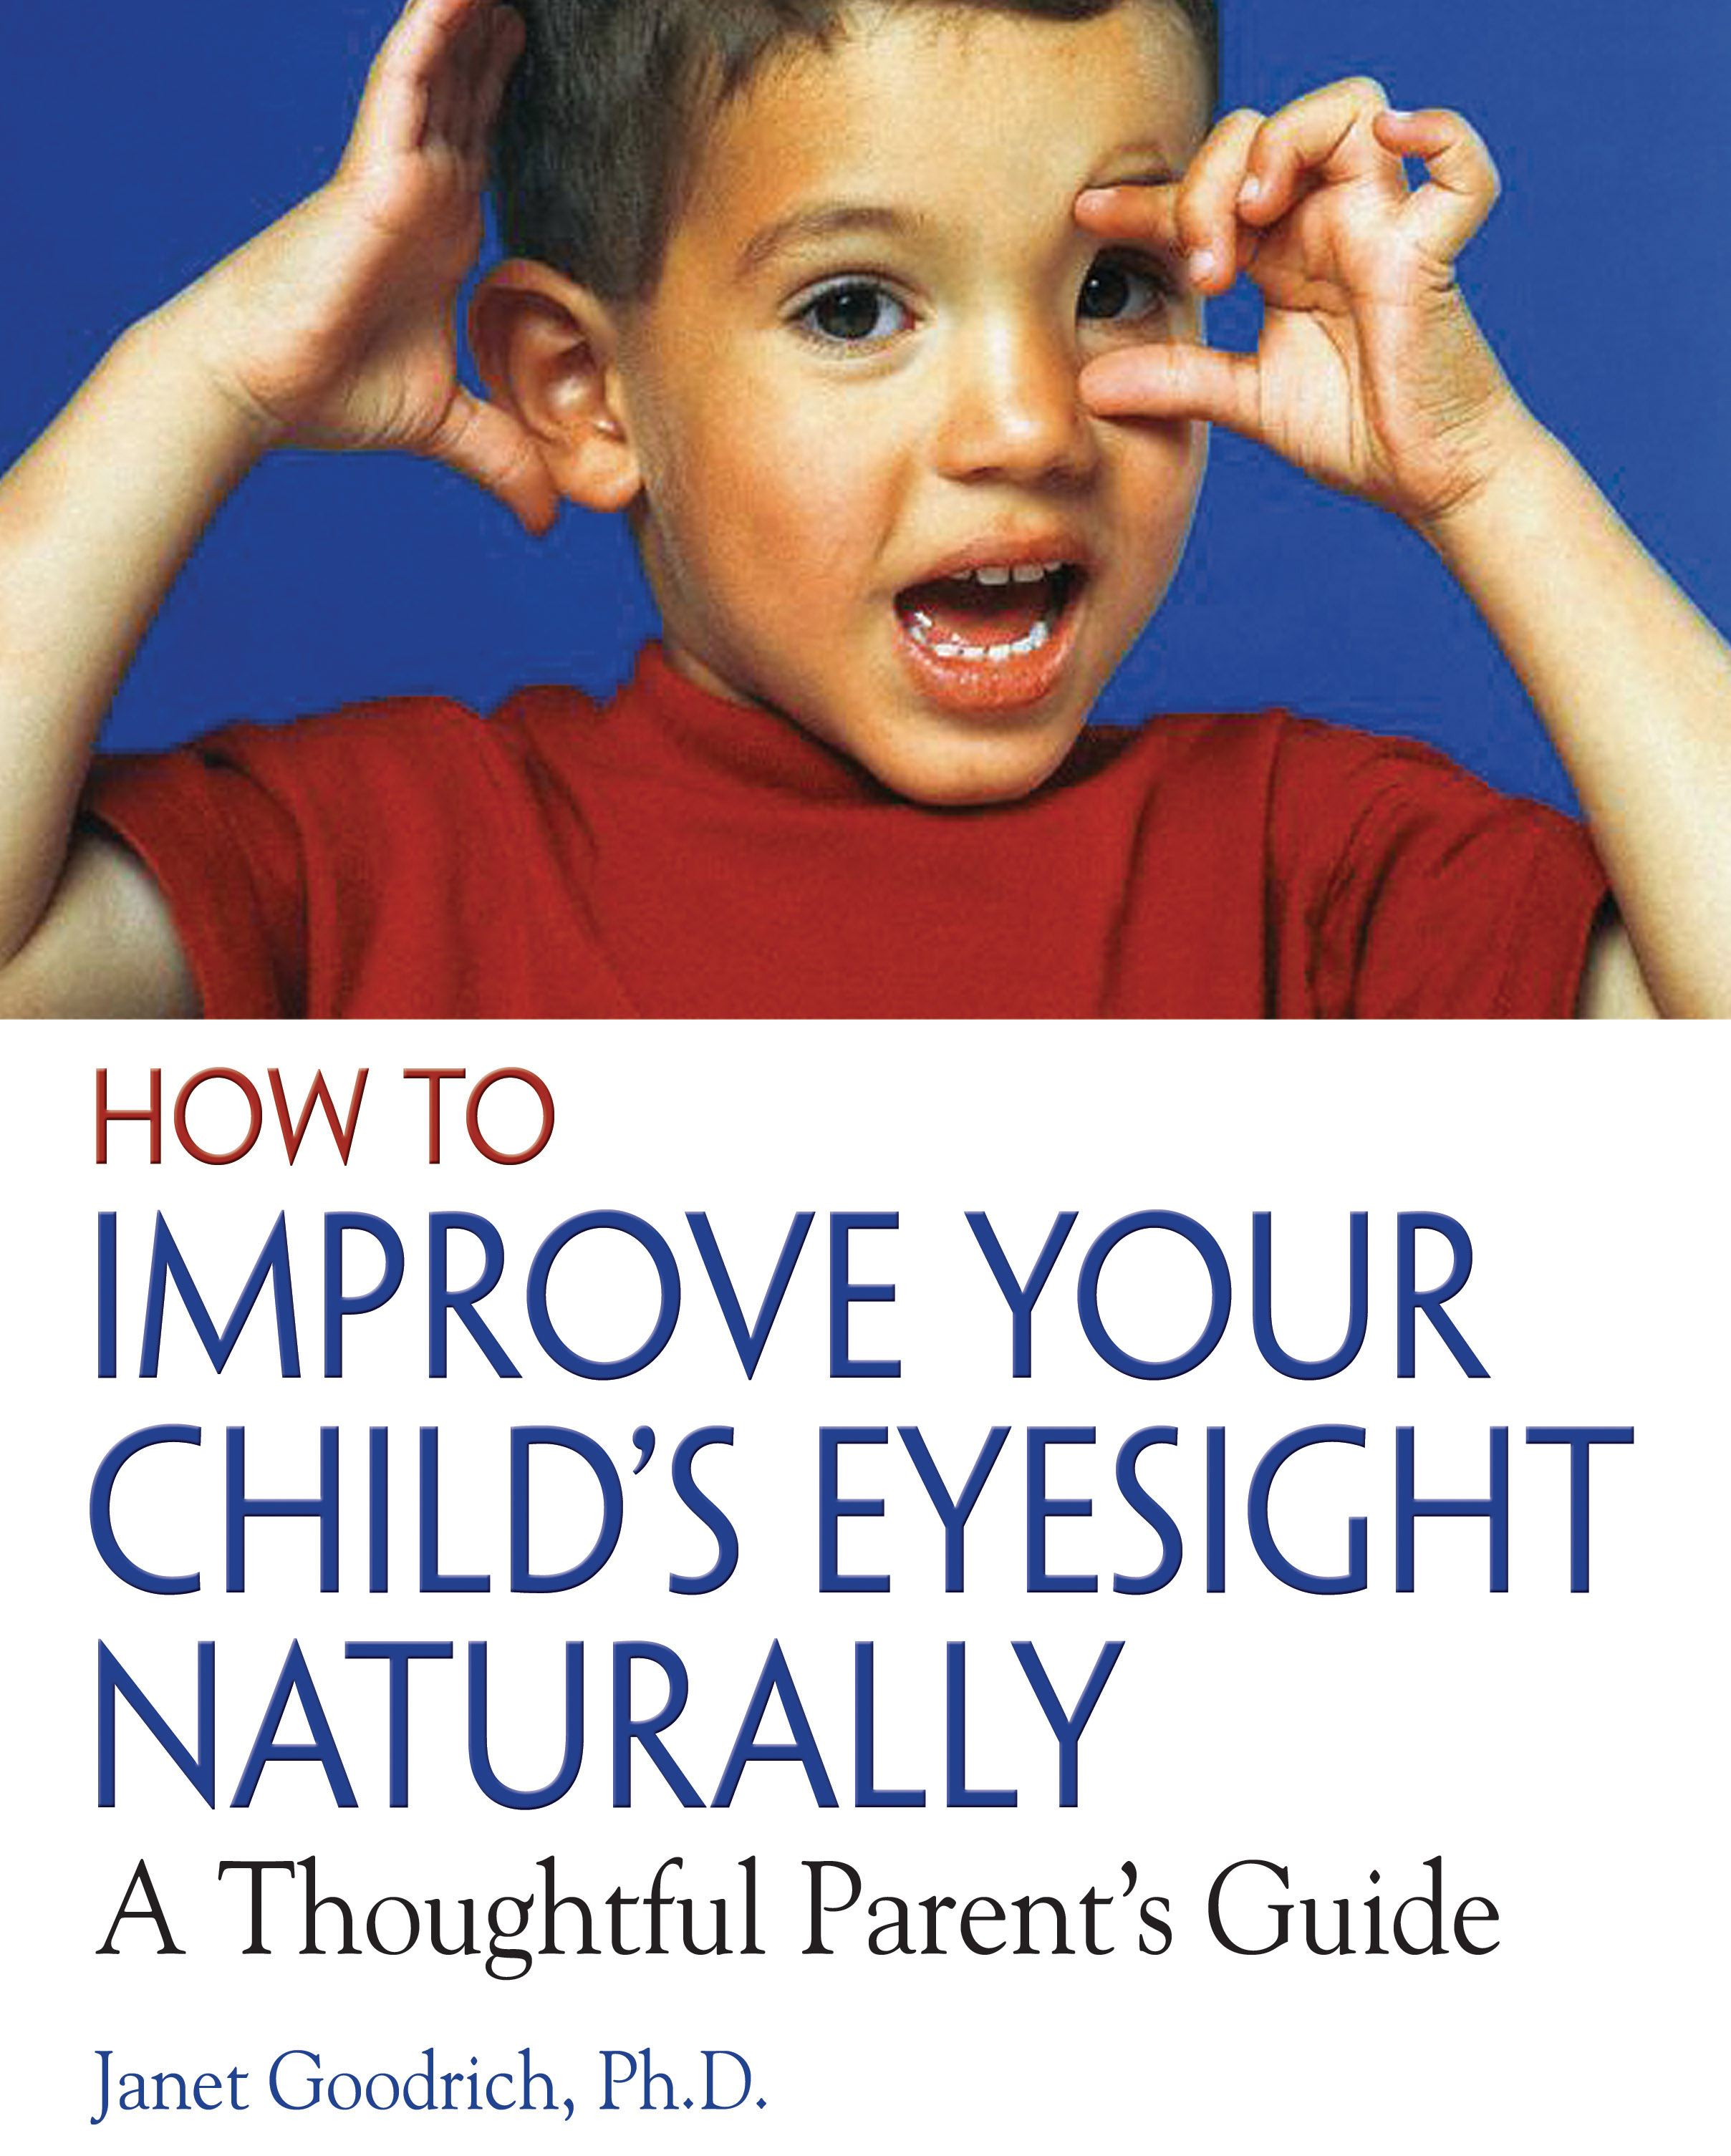 How to improve your childs eyesight naturally 9780892811304 hr